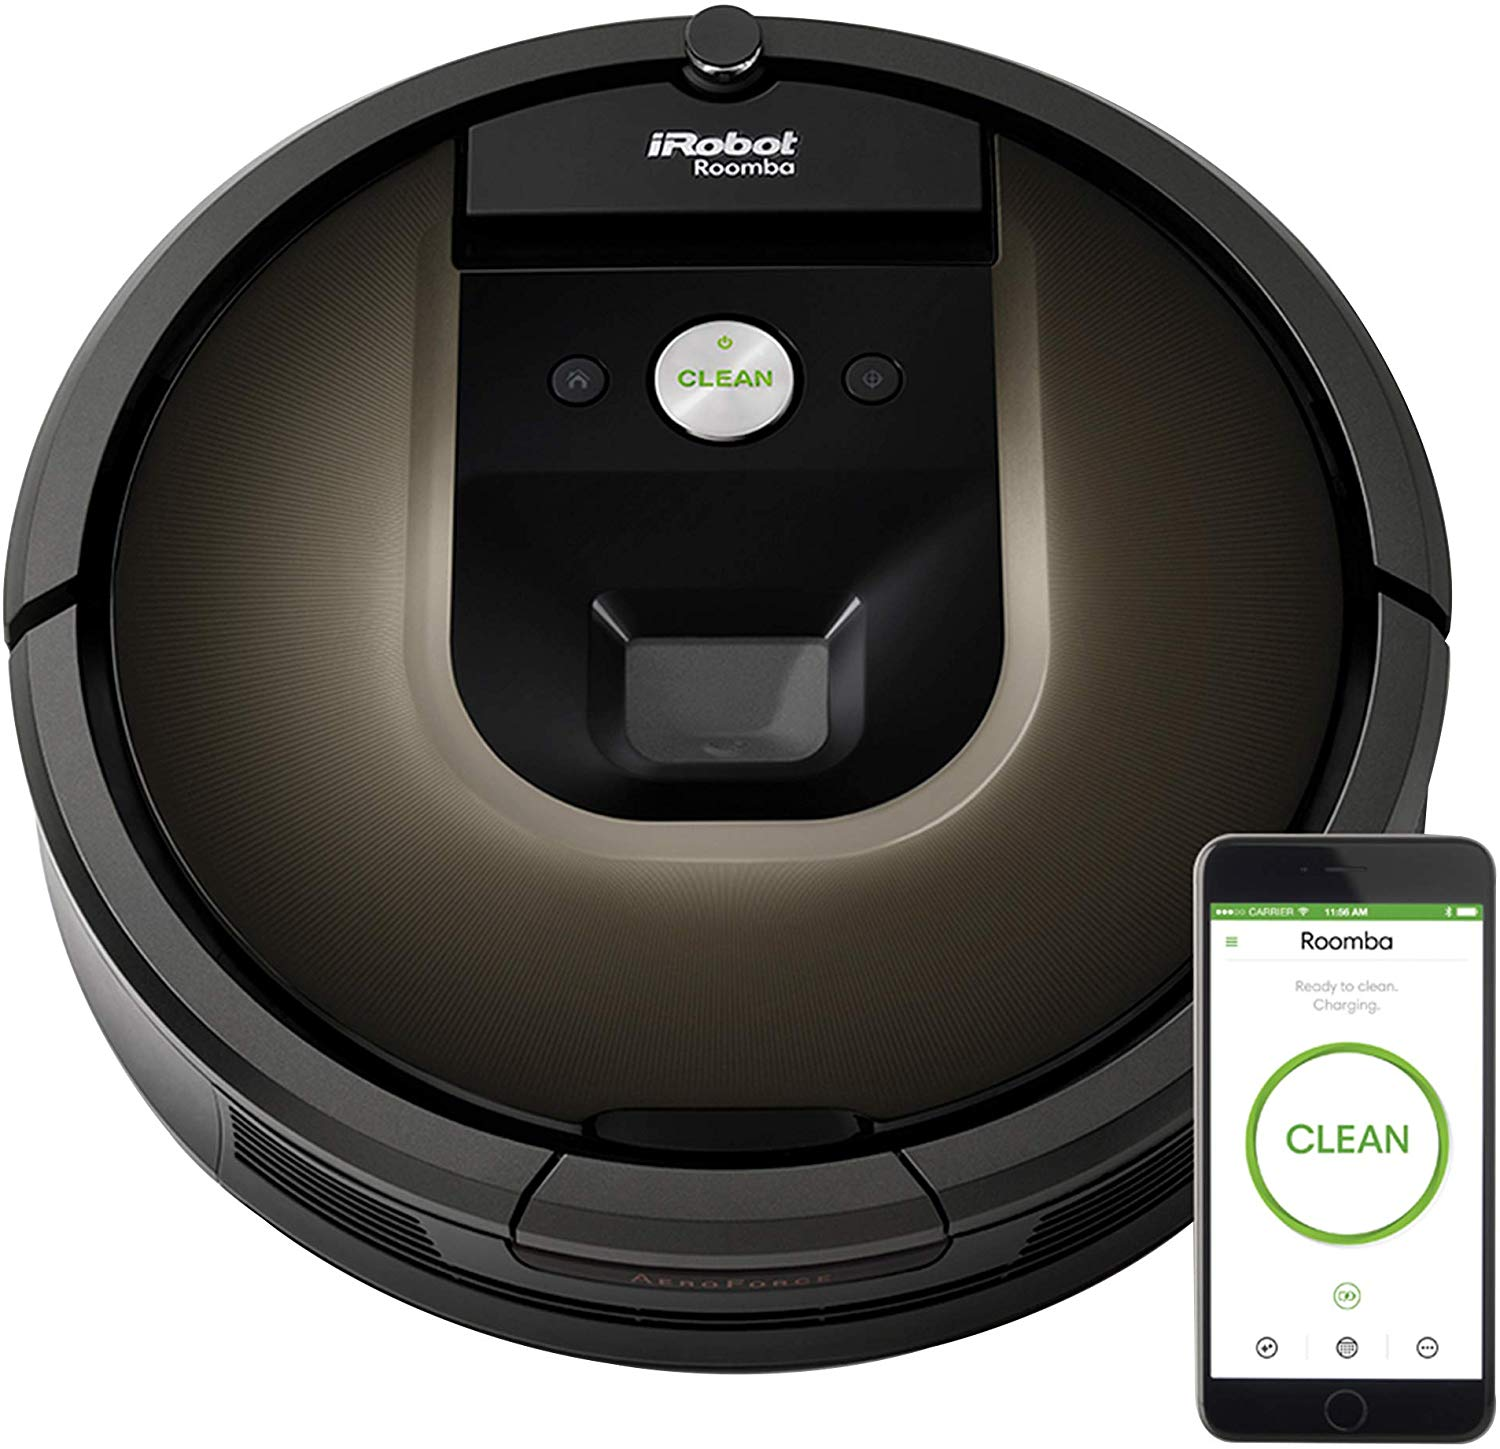 roomba 980 reviews